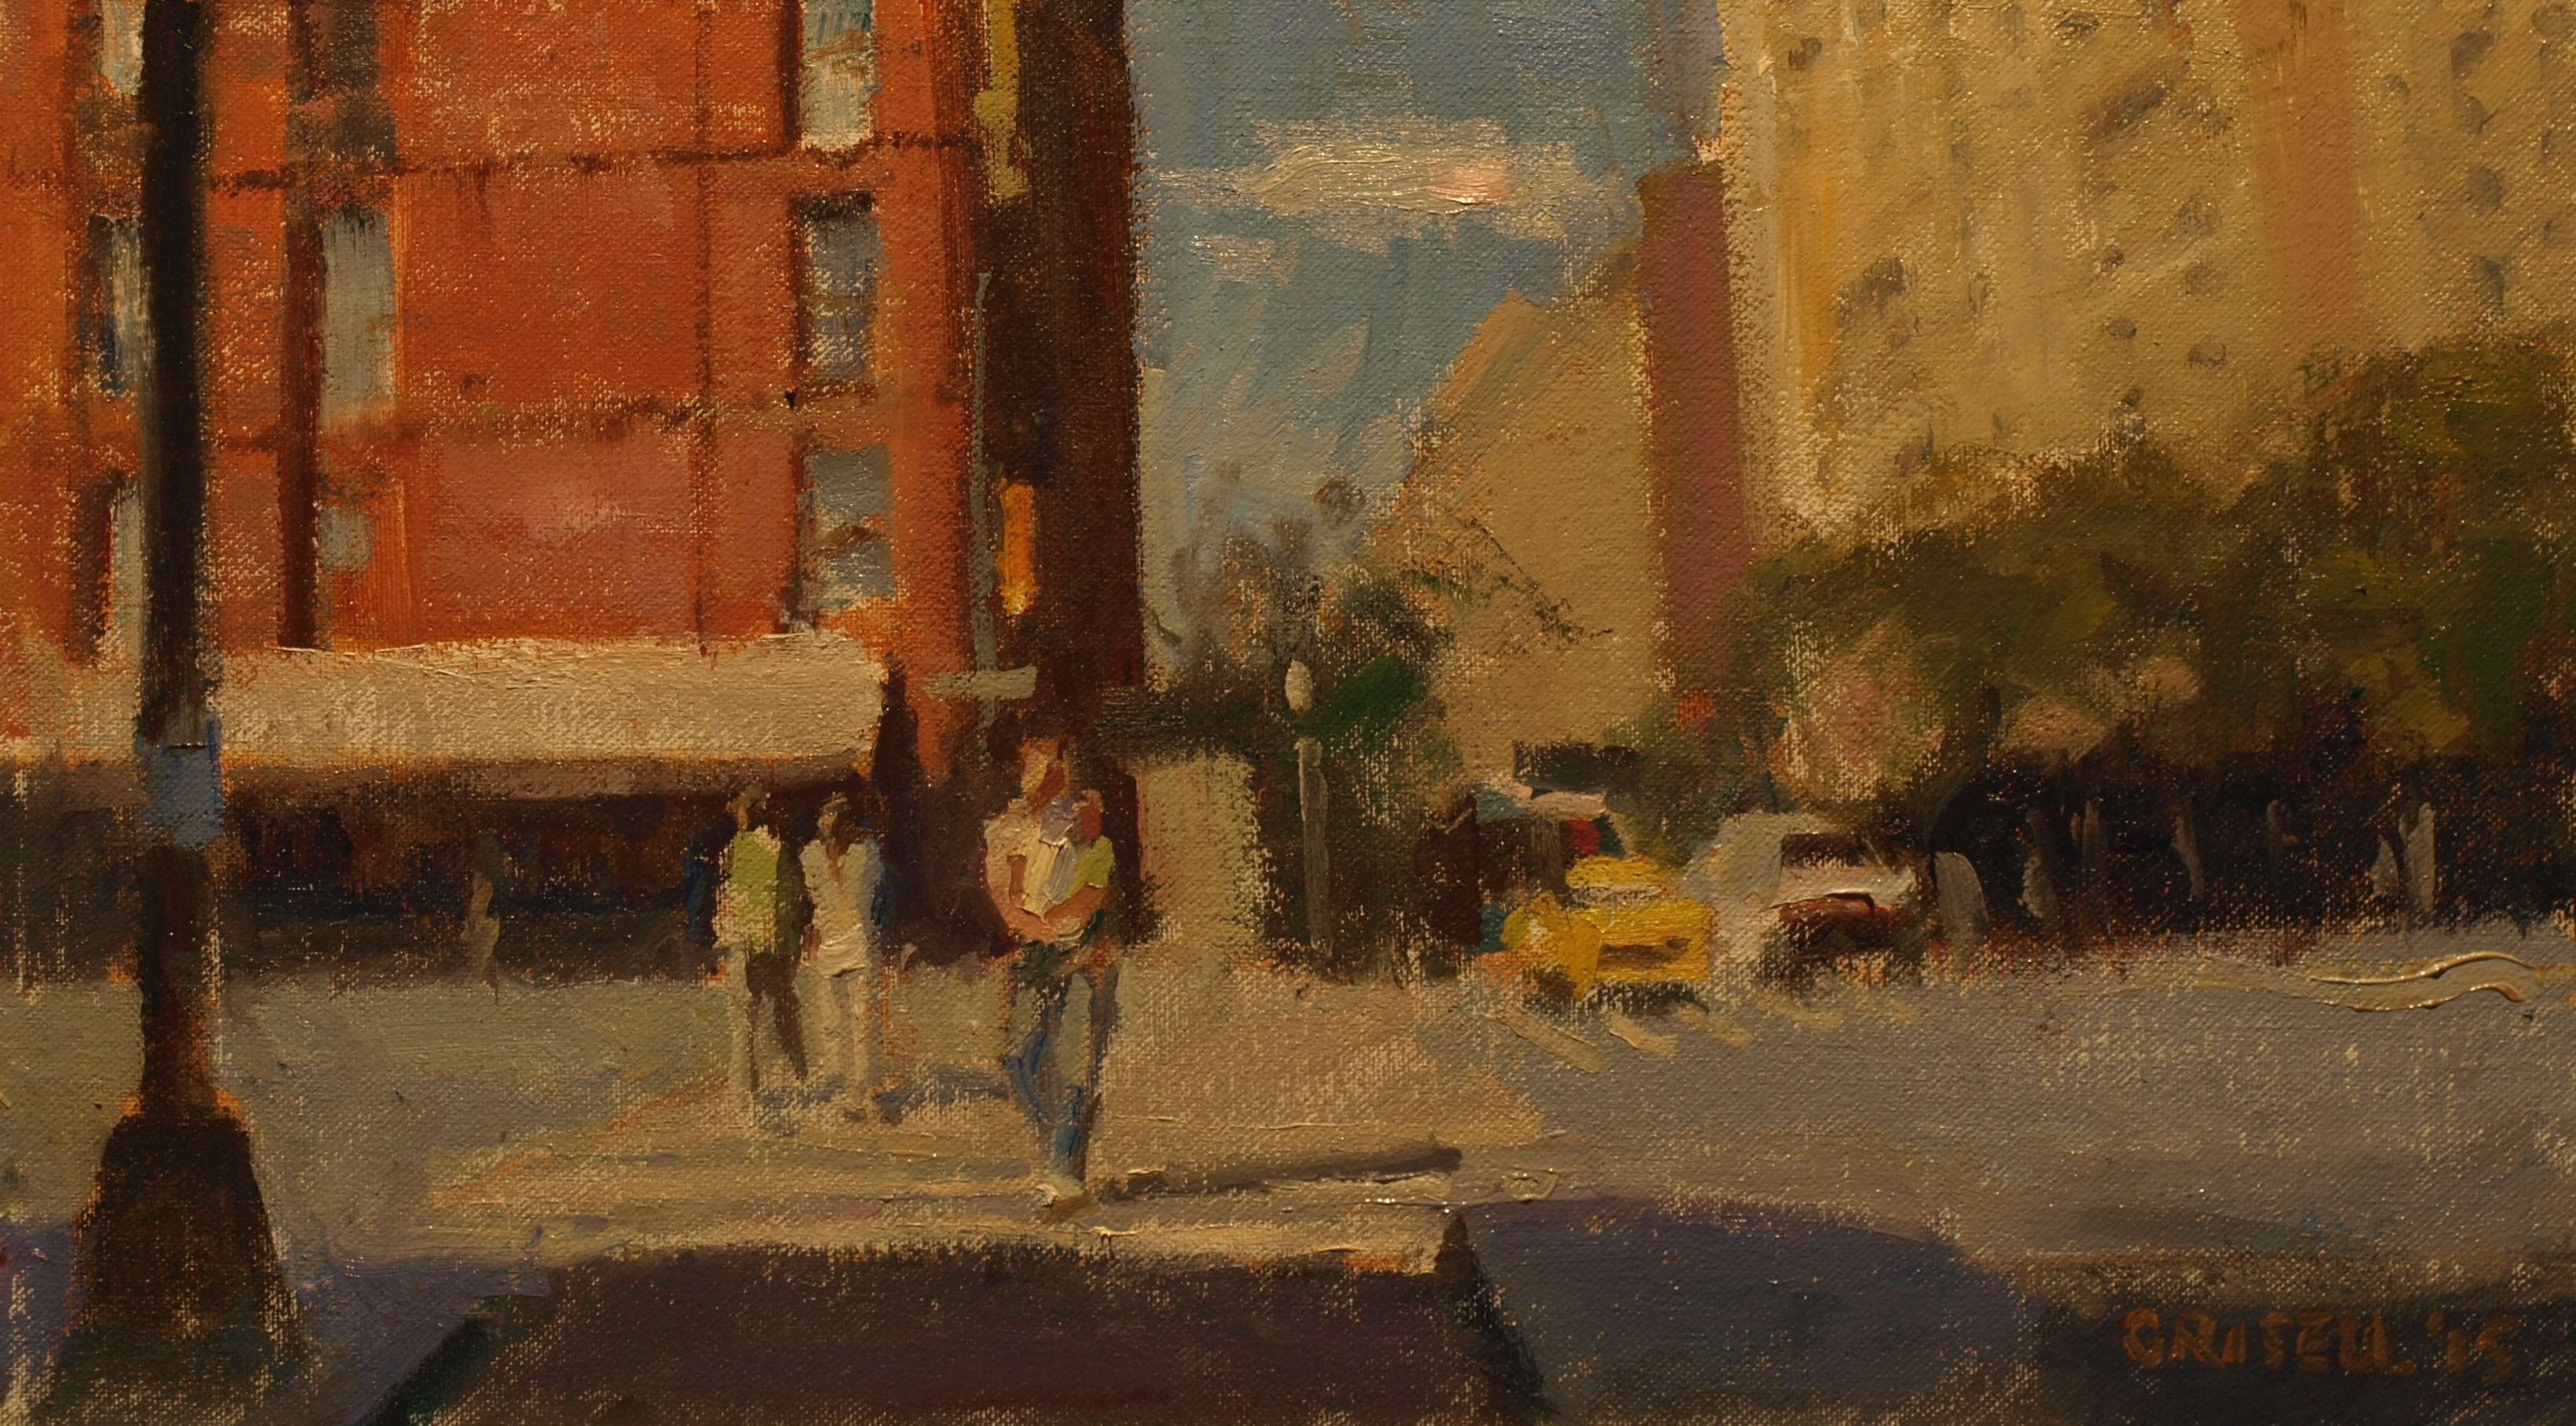 Street Crossing, Oil on Canvas on Panel, 9 x 16 Inches, by Susan Grisell, $250